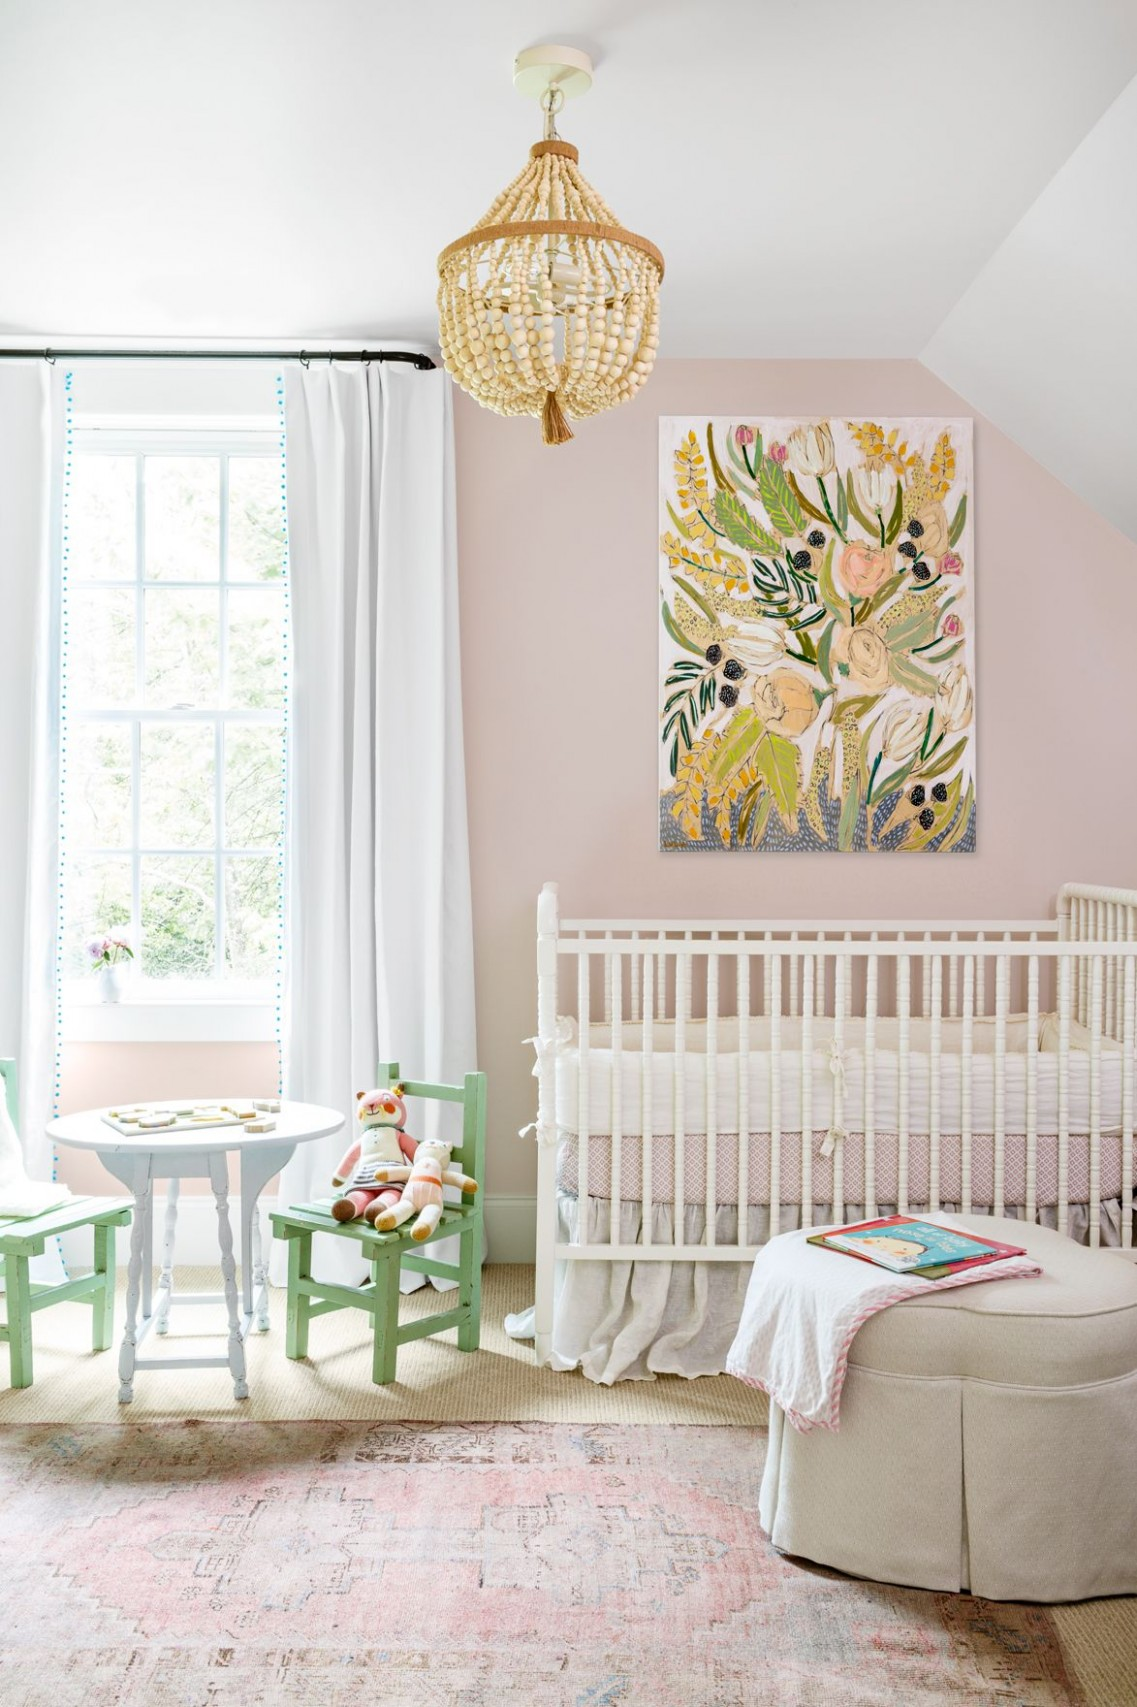 12 Best Baby Room Ideas - Nursery Design, Organization, and  - Baby Room Chandelier